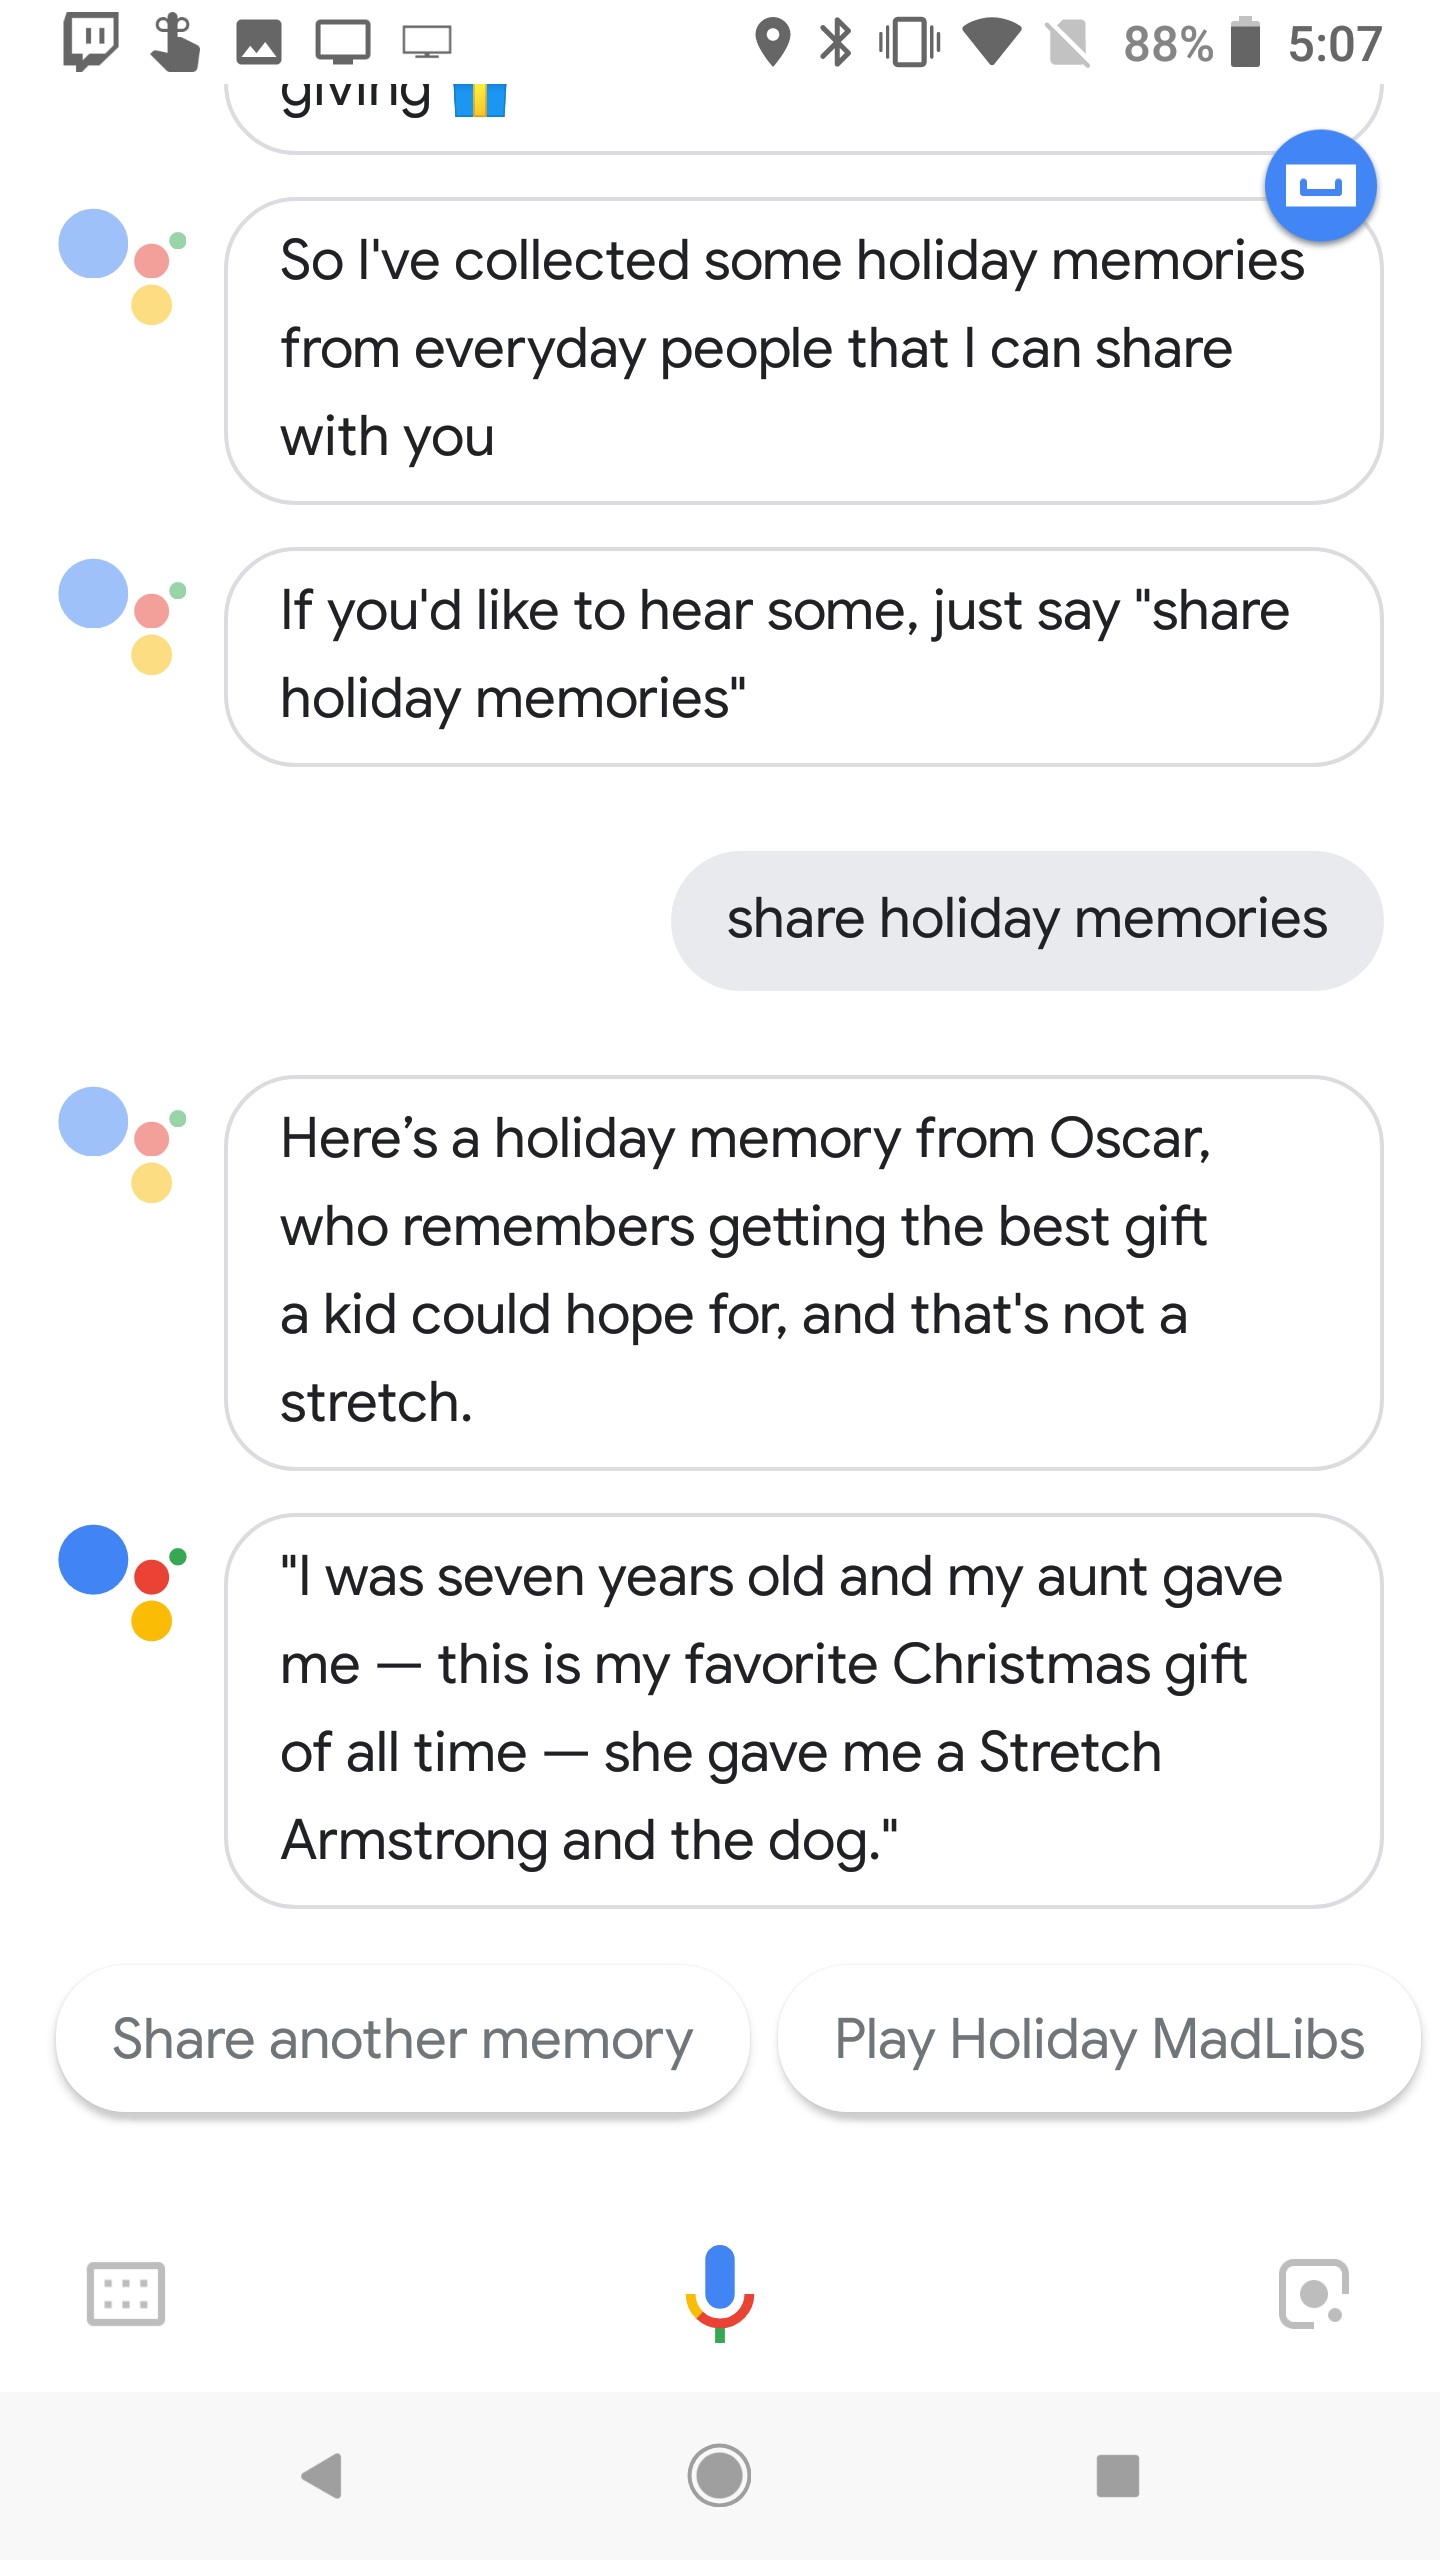 Google Home and Assistant still have some fun Christmas Easter eggs ...